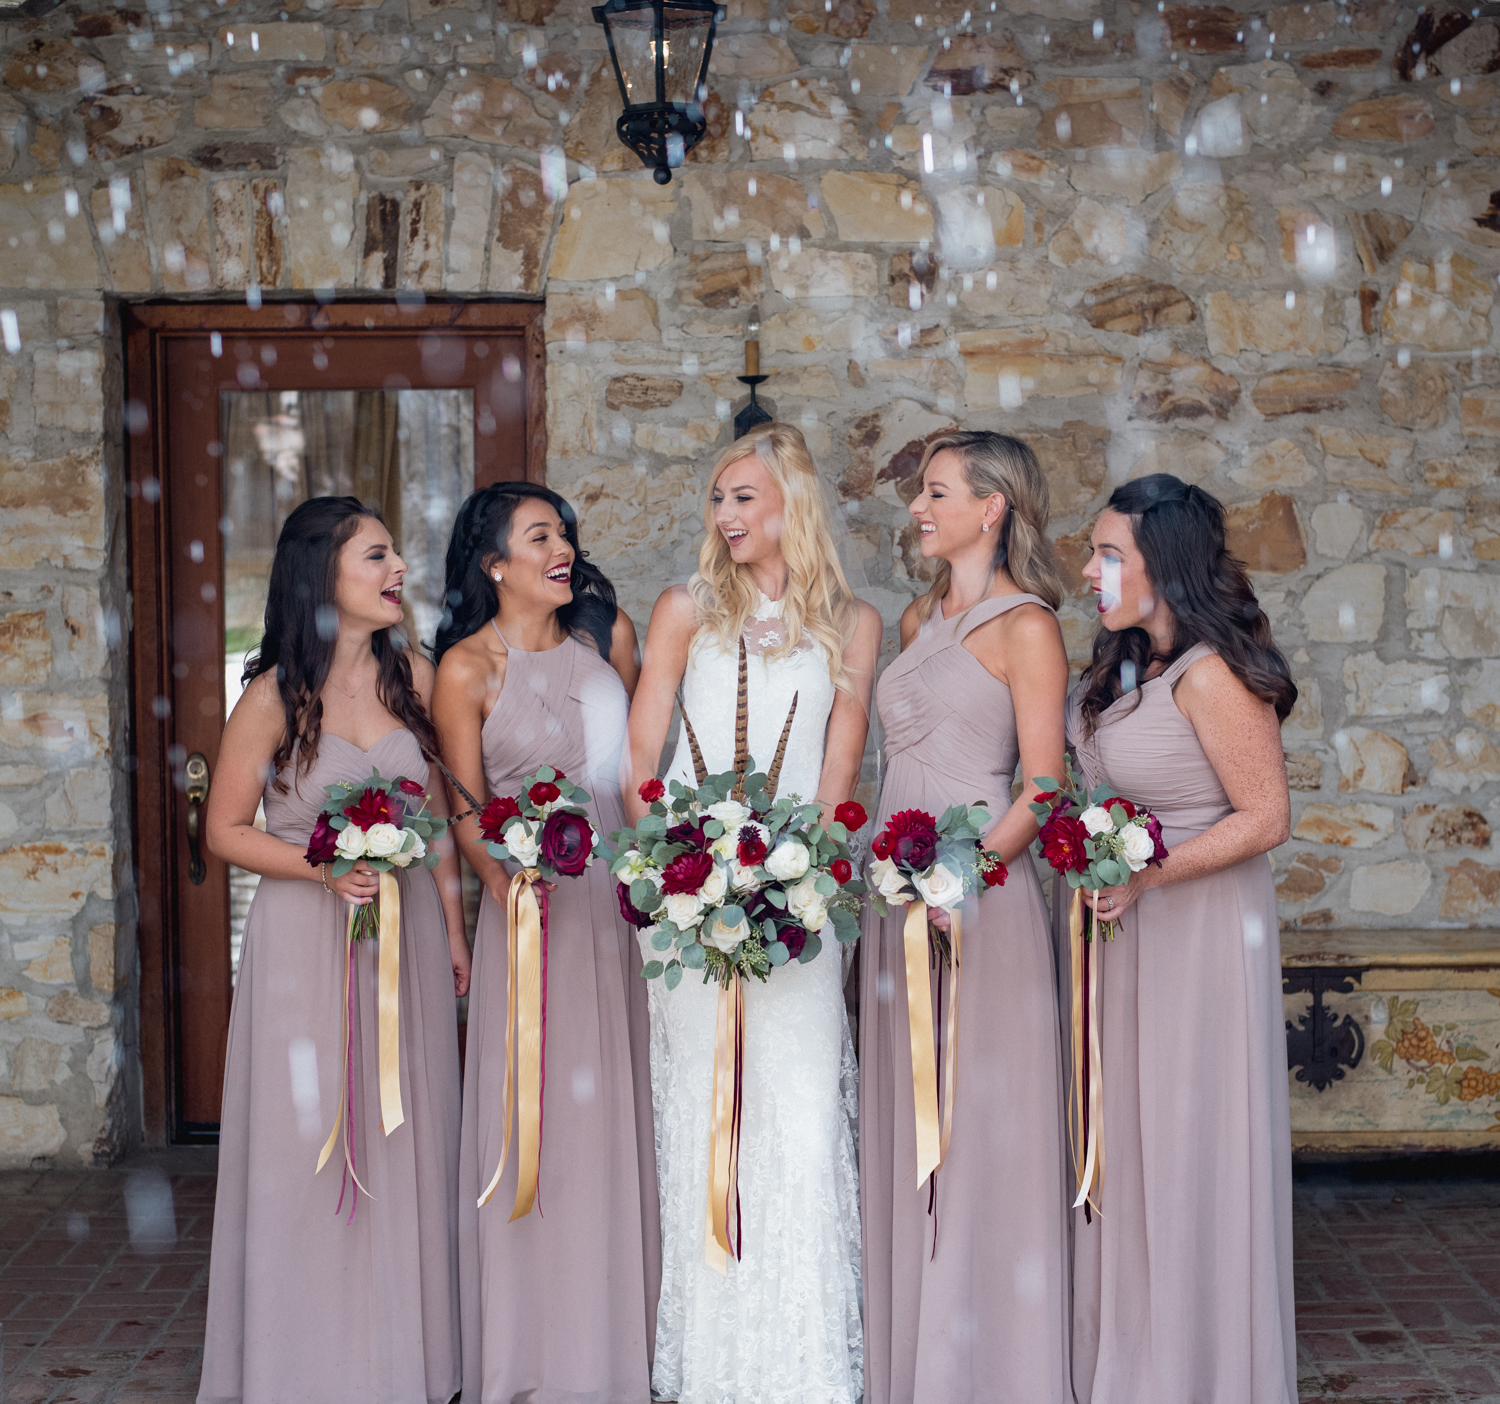 Vintage Bridal Gowns in Los Gatos at In the Olde Manner